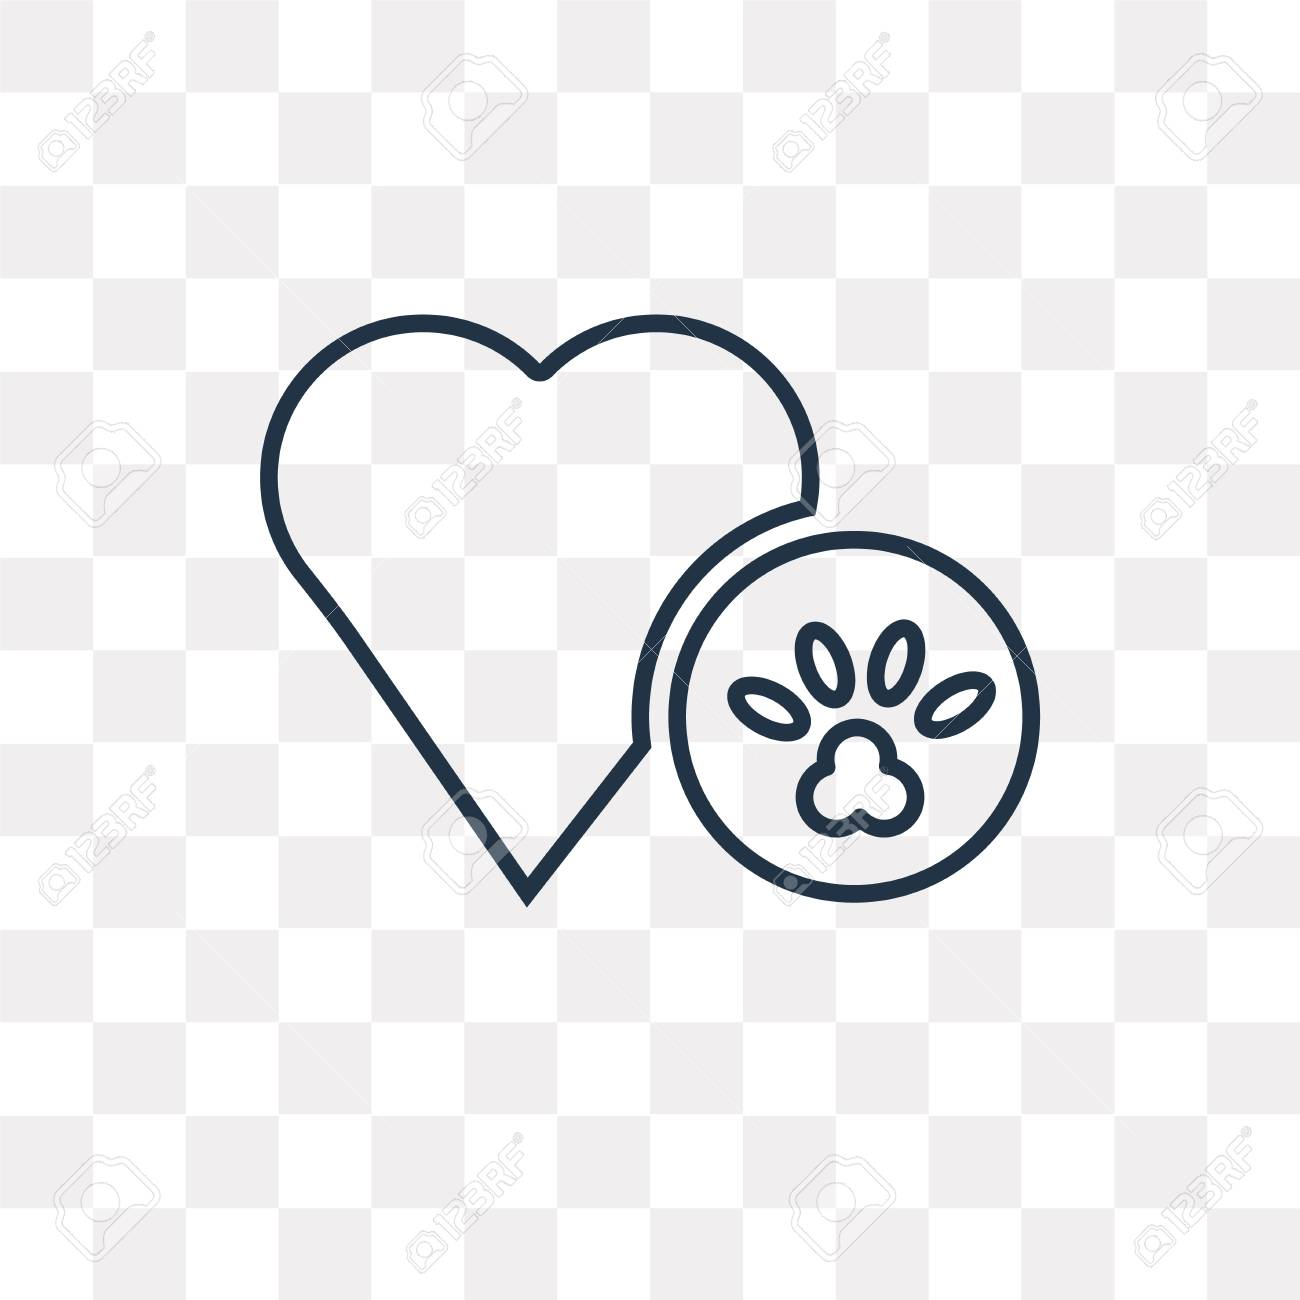 Dog Pawprint vector outline icon isolated on transparent background,